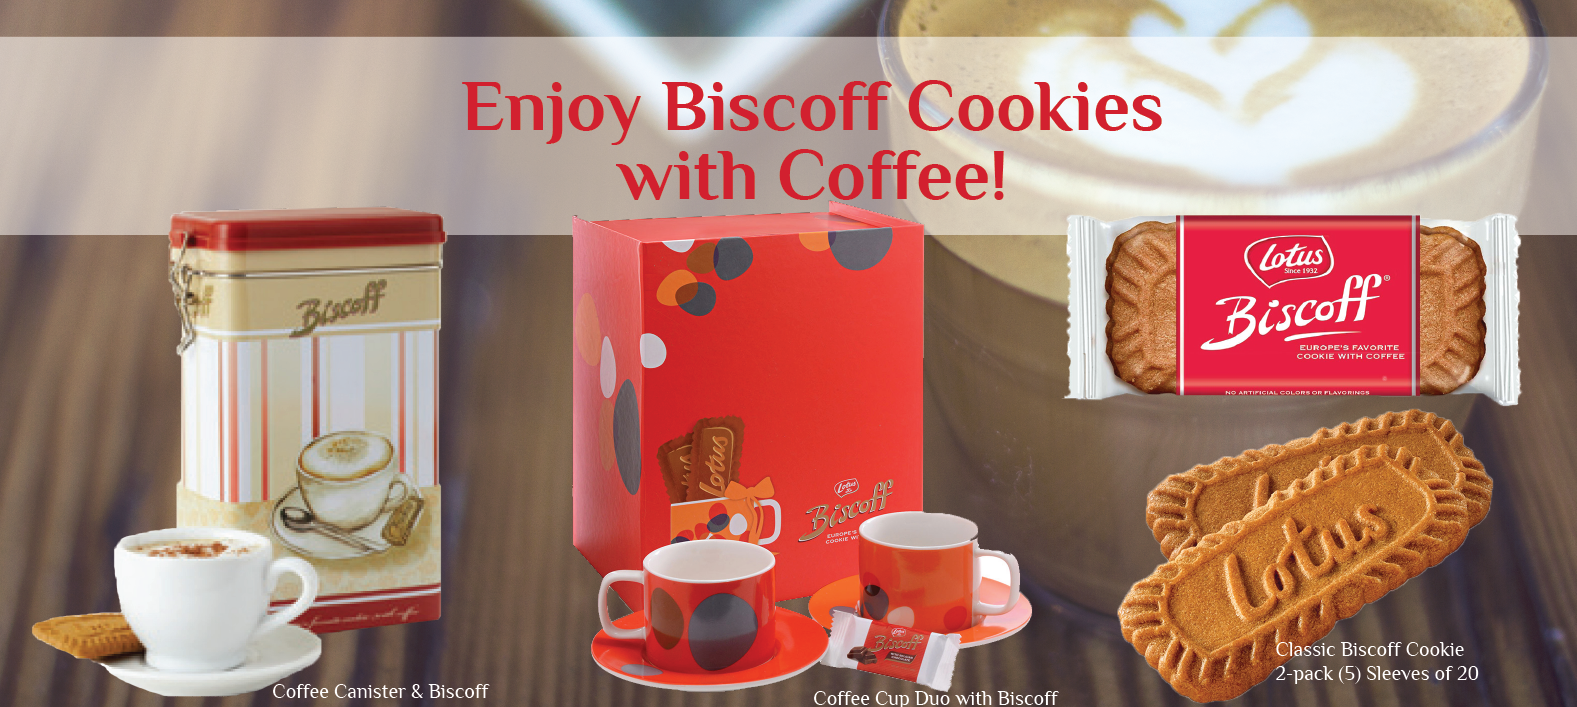 Biscoff Cookies and Coffee